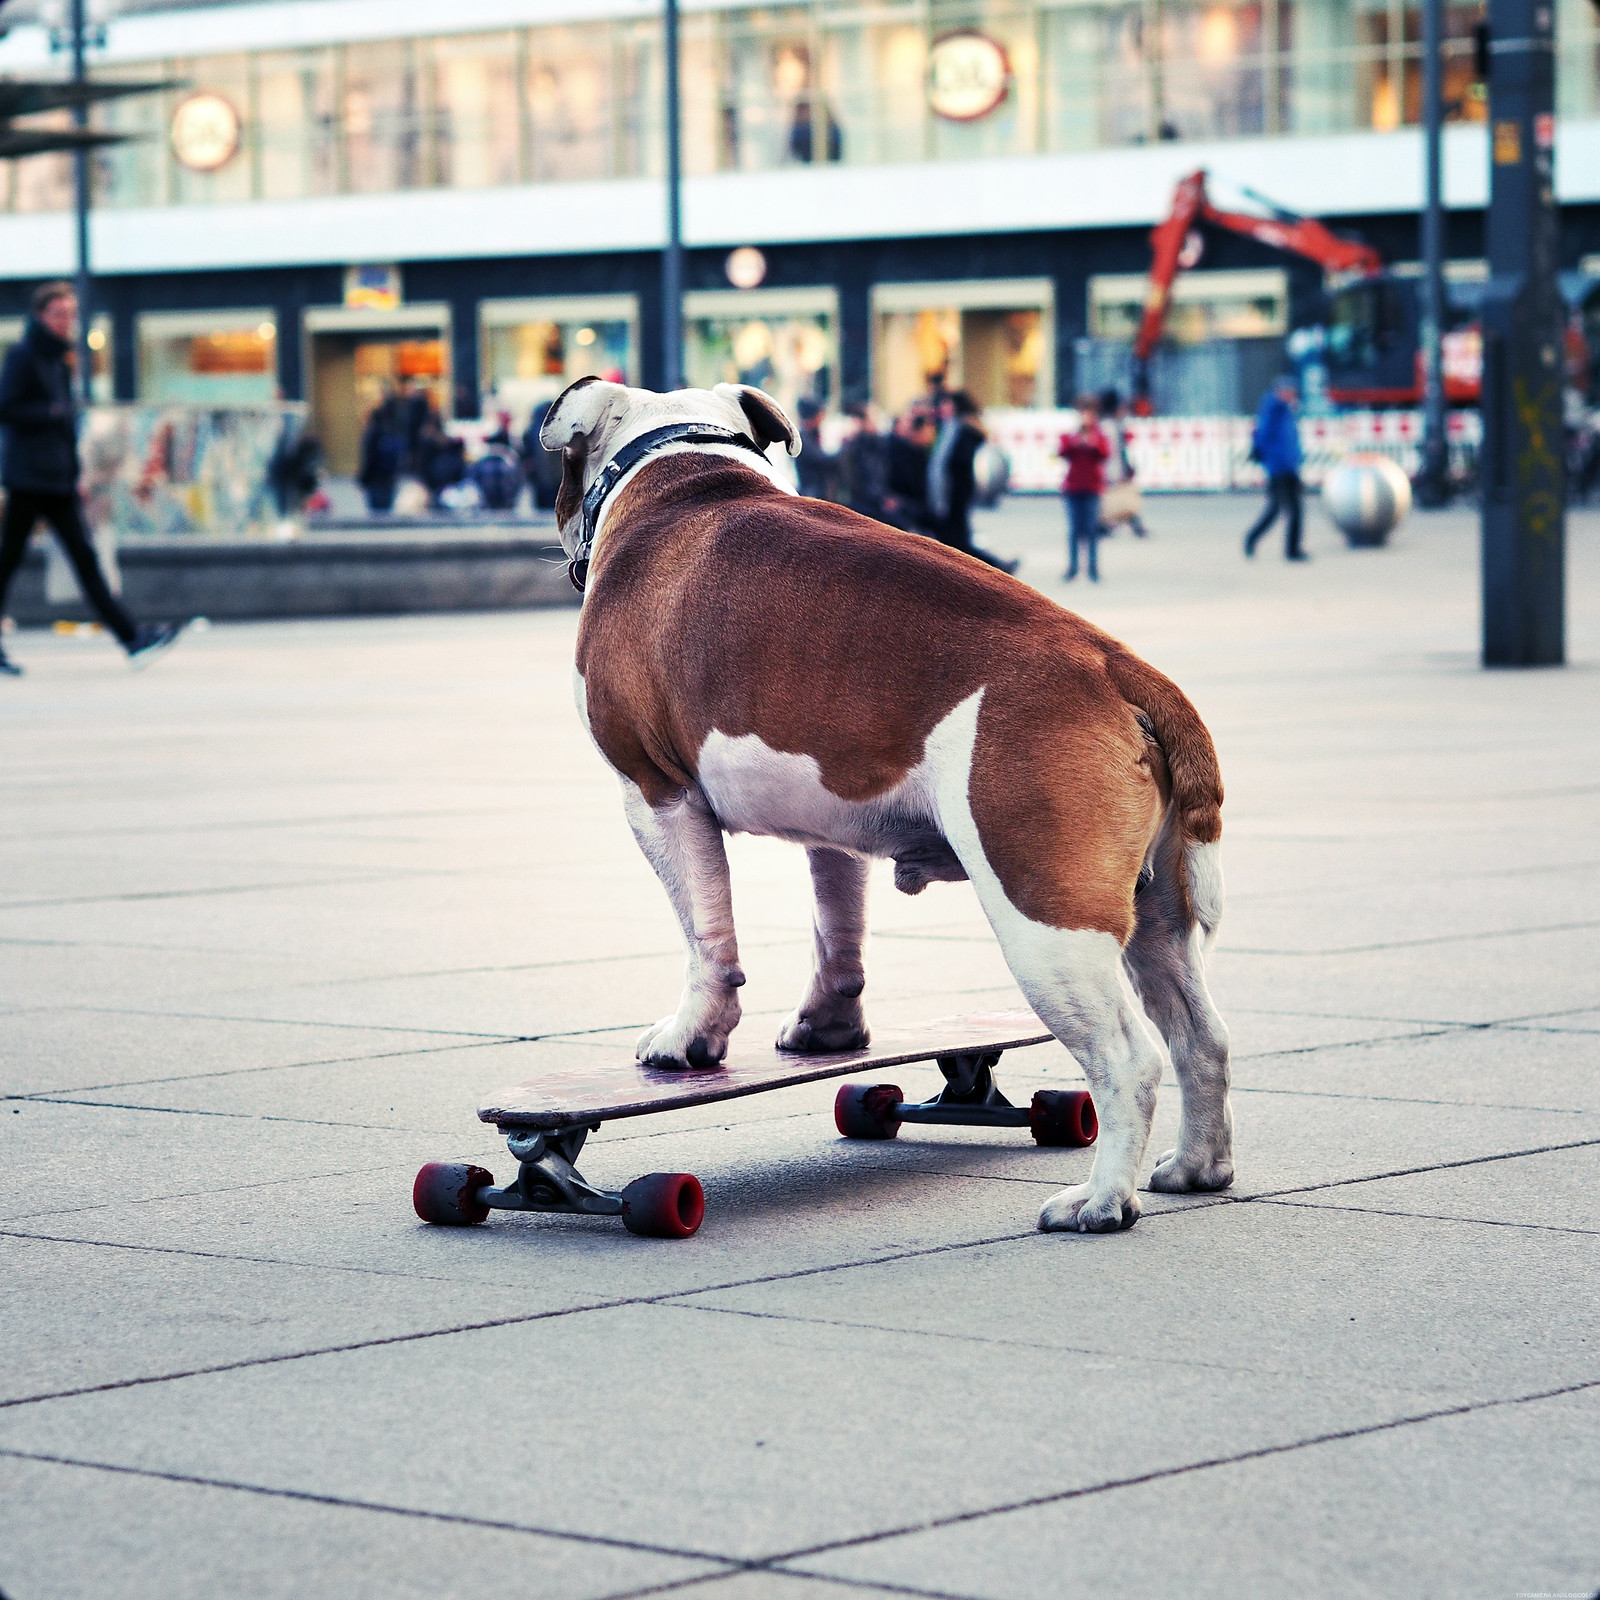 Skateboarding Skate Board Dog Famous Berlin_effected